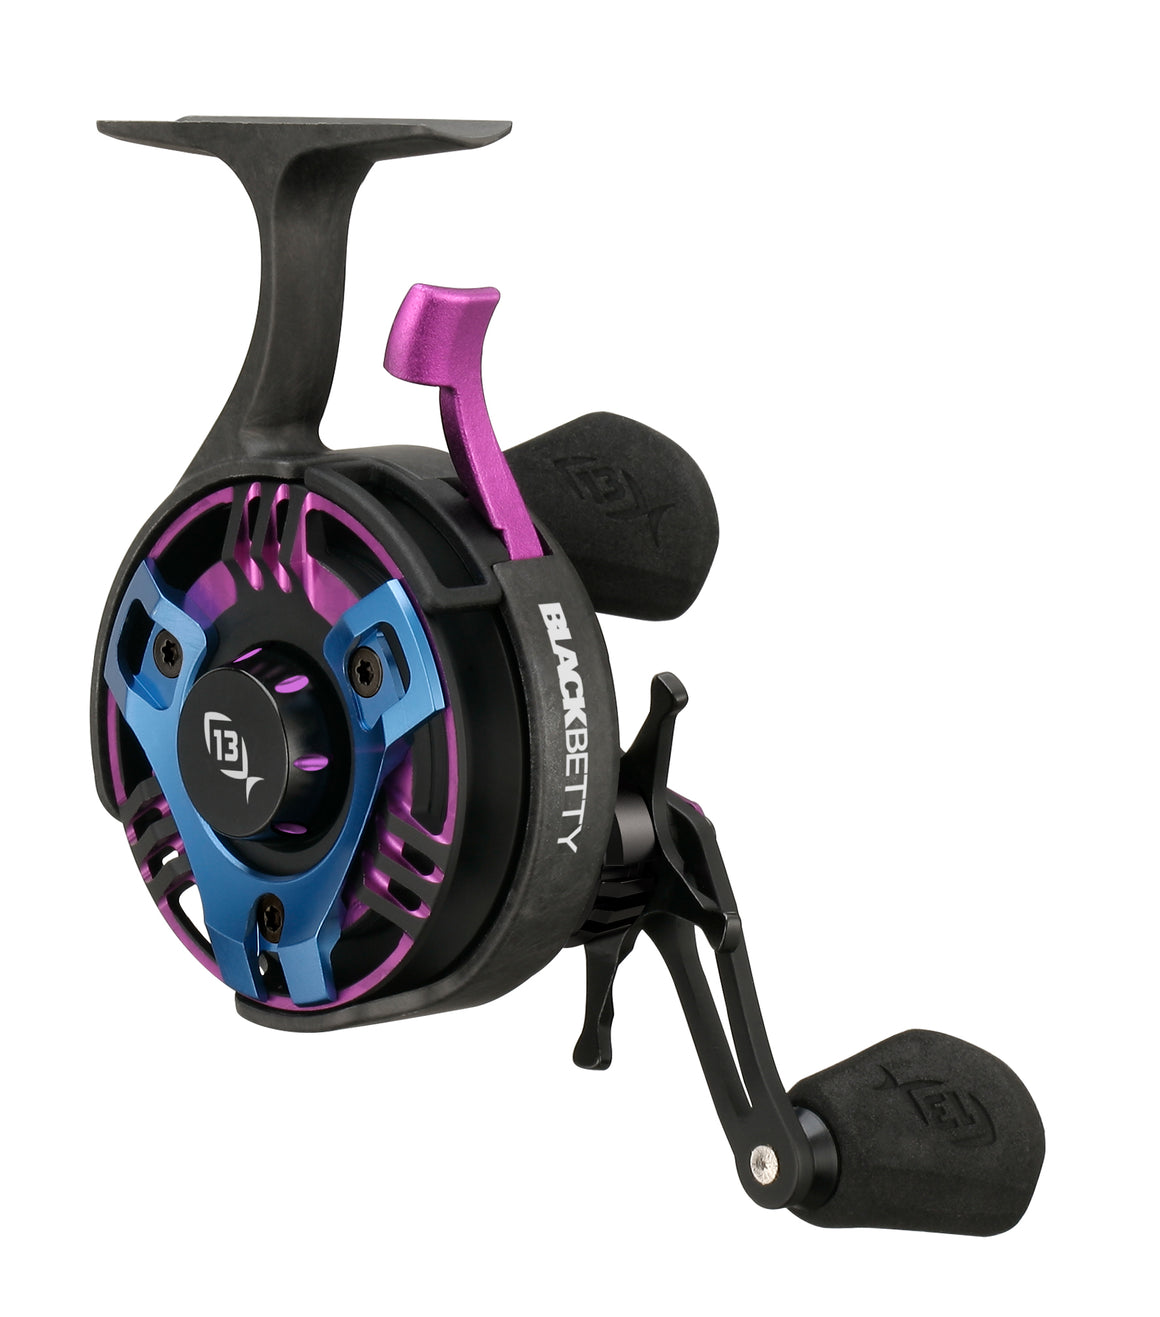 13 Fishing Black Betty FreeFall Ice Reel - Trickshop Edition (Miami Night) - Direct Fishing Sales